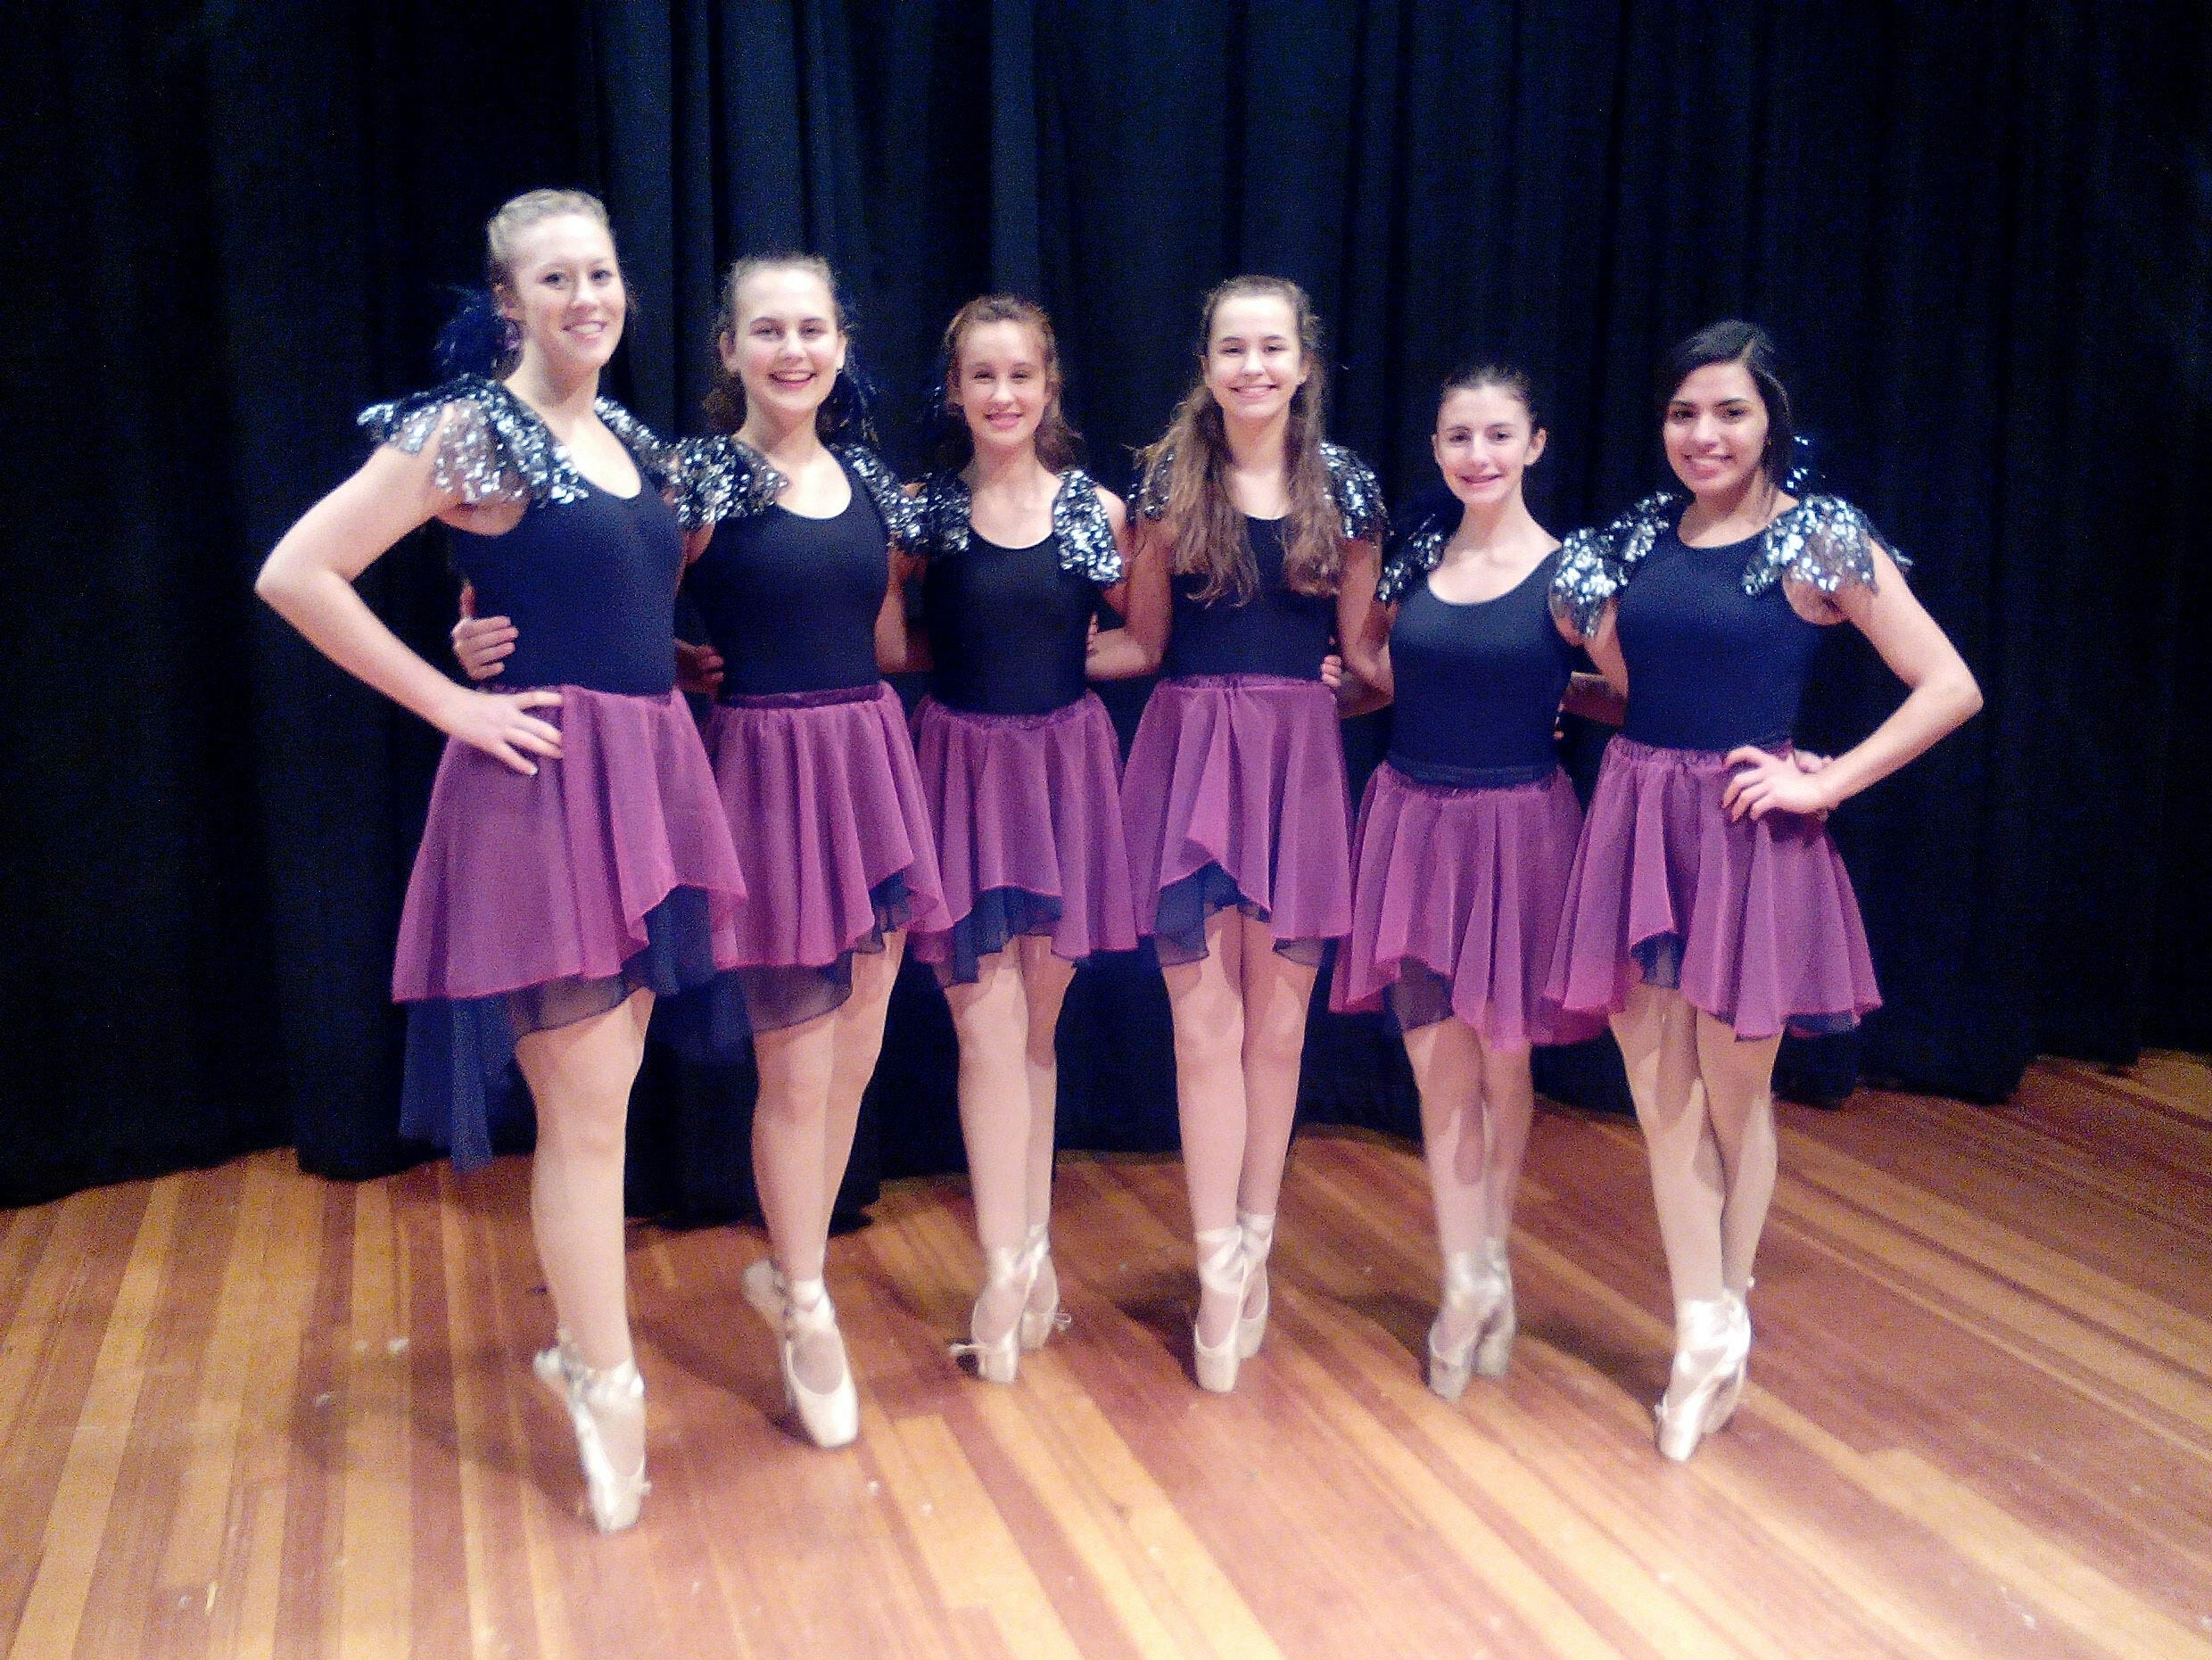 Holding Court: France School of Dance Fundraiser, Art Center Classes and Bird Calendar